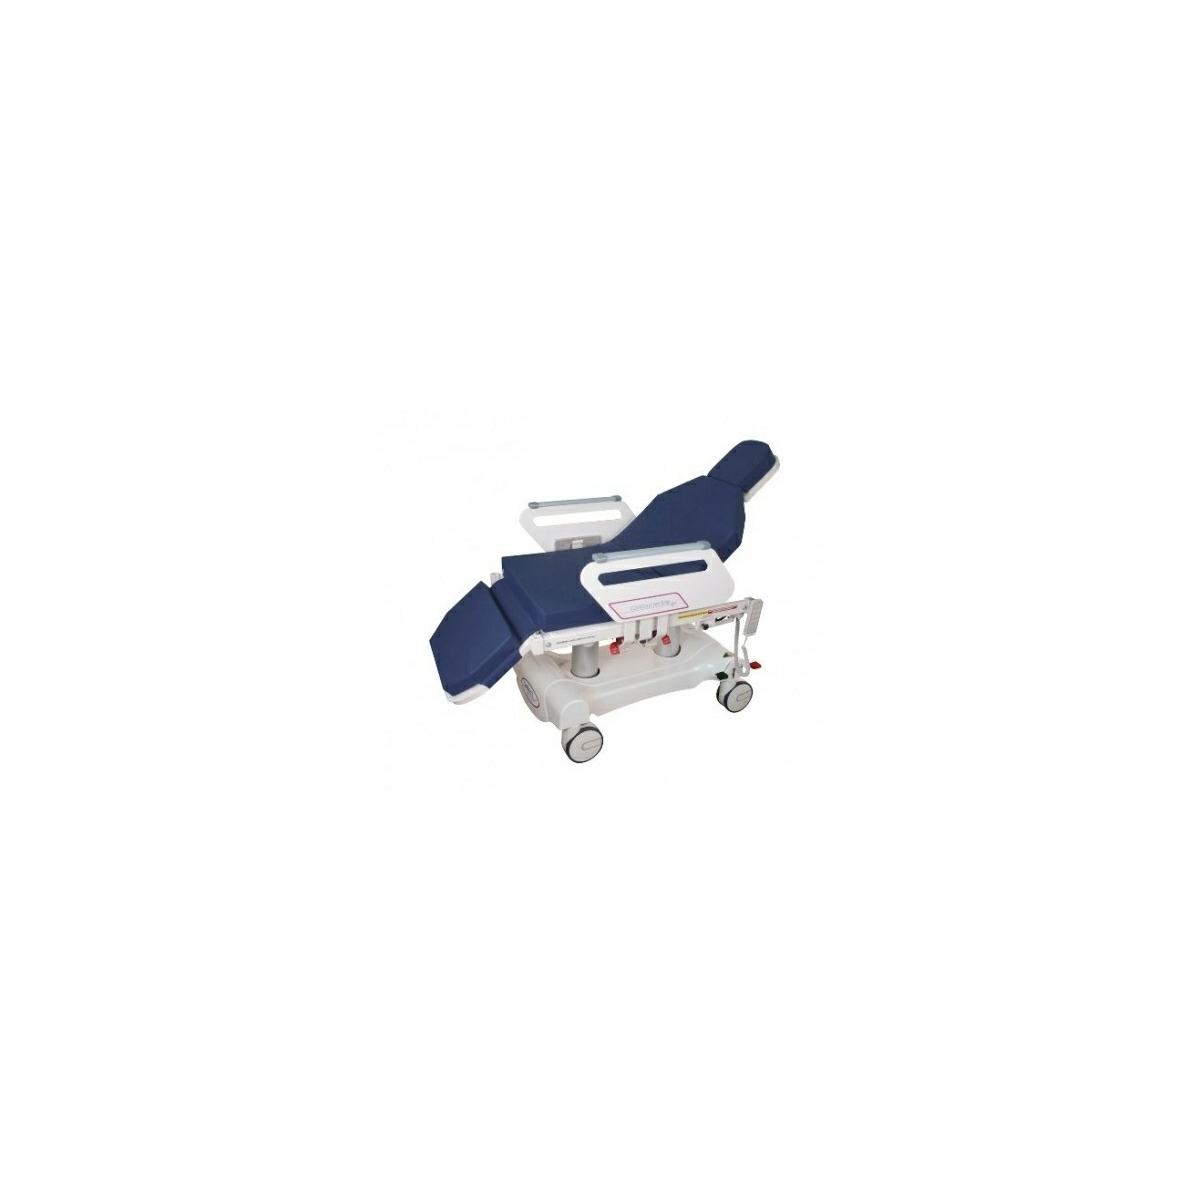 Contour Recline Vertex Procedure and Treatment Chair- Electric